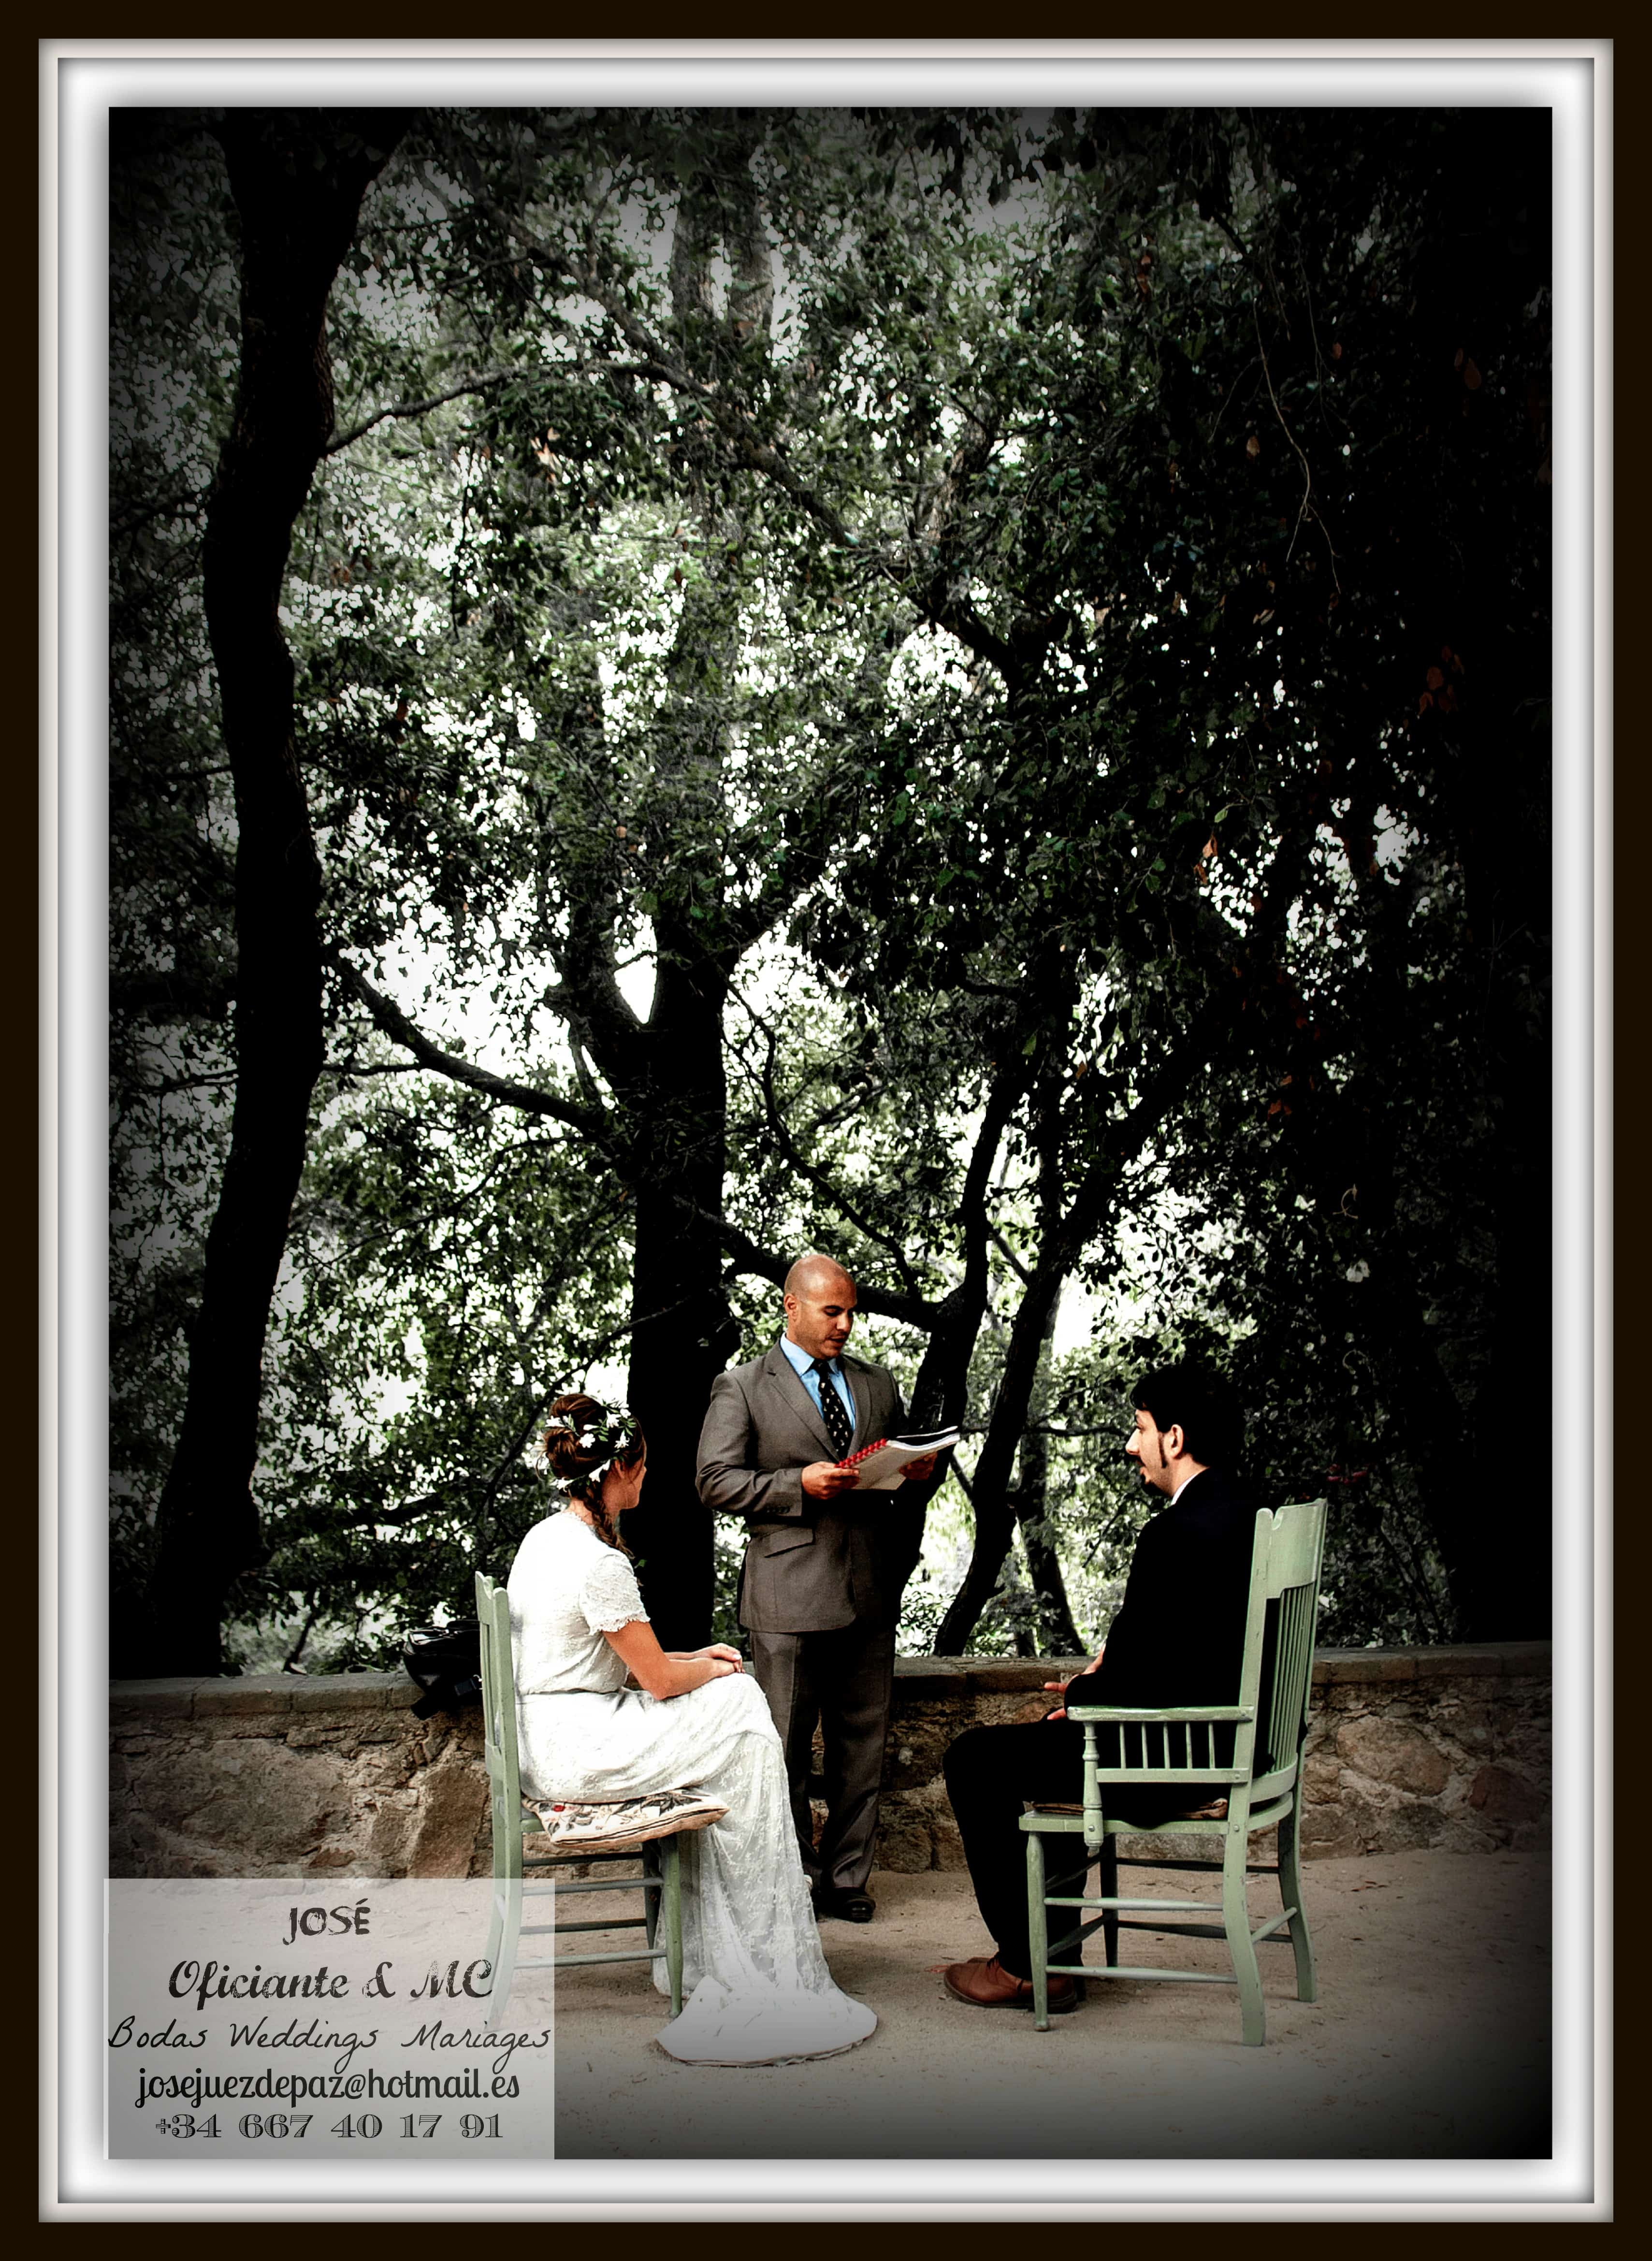 Jose Juez de Paz Bodas Civiles Oficiante Maestro de Ceremonias Weddings Mariages Spain Trees Vintage 2